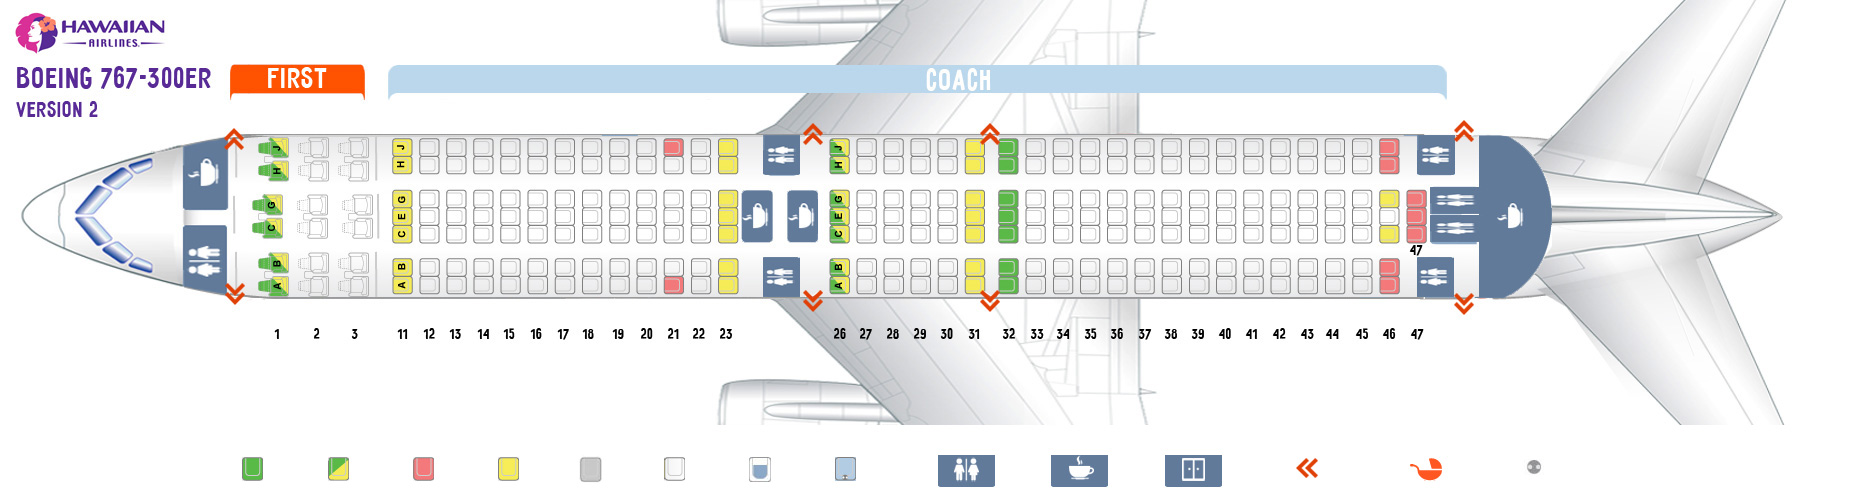 Seat map Boeing 767-300 2 version Hawaiian airlines